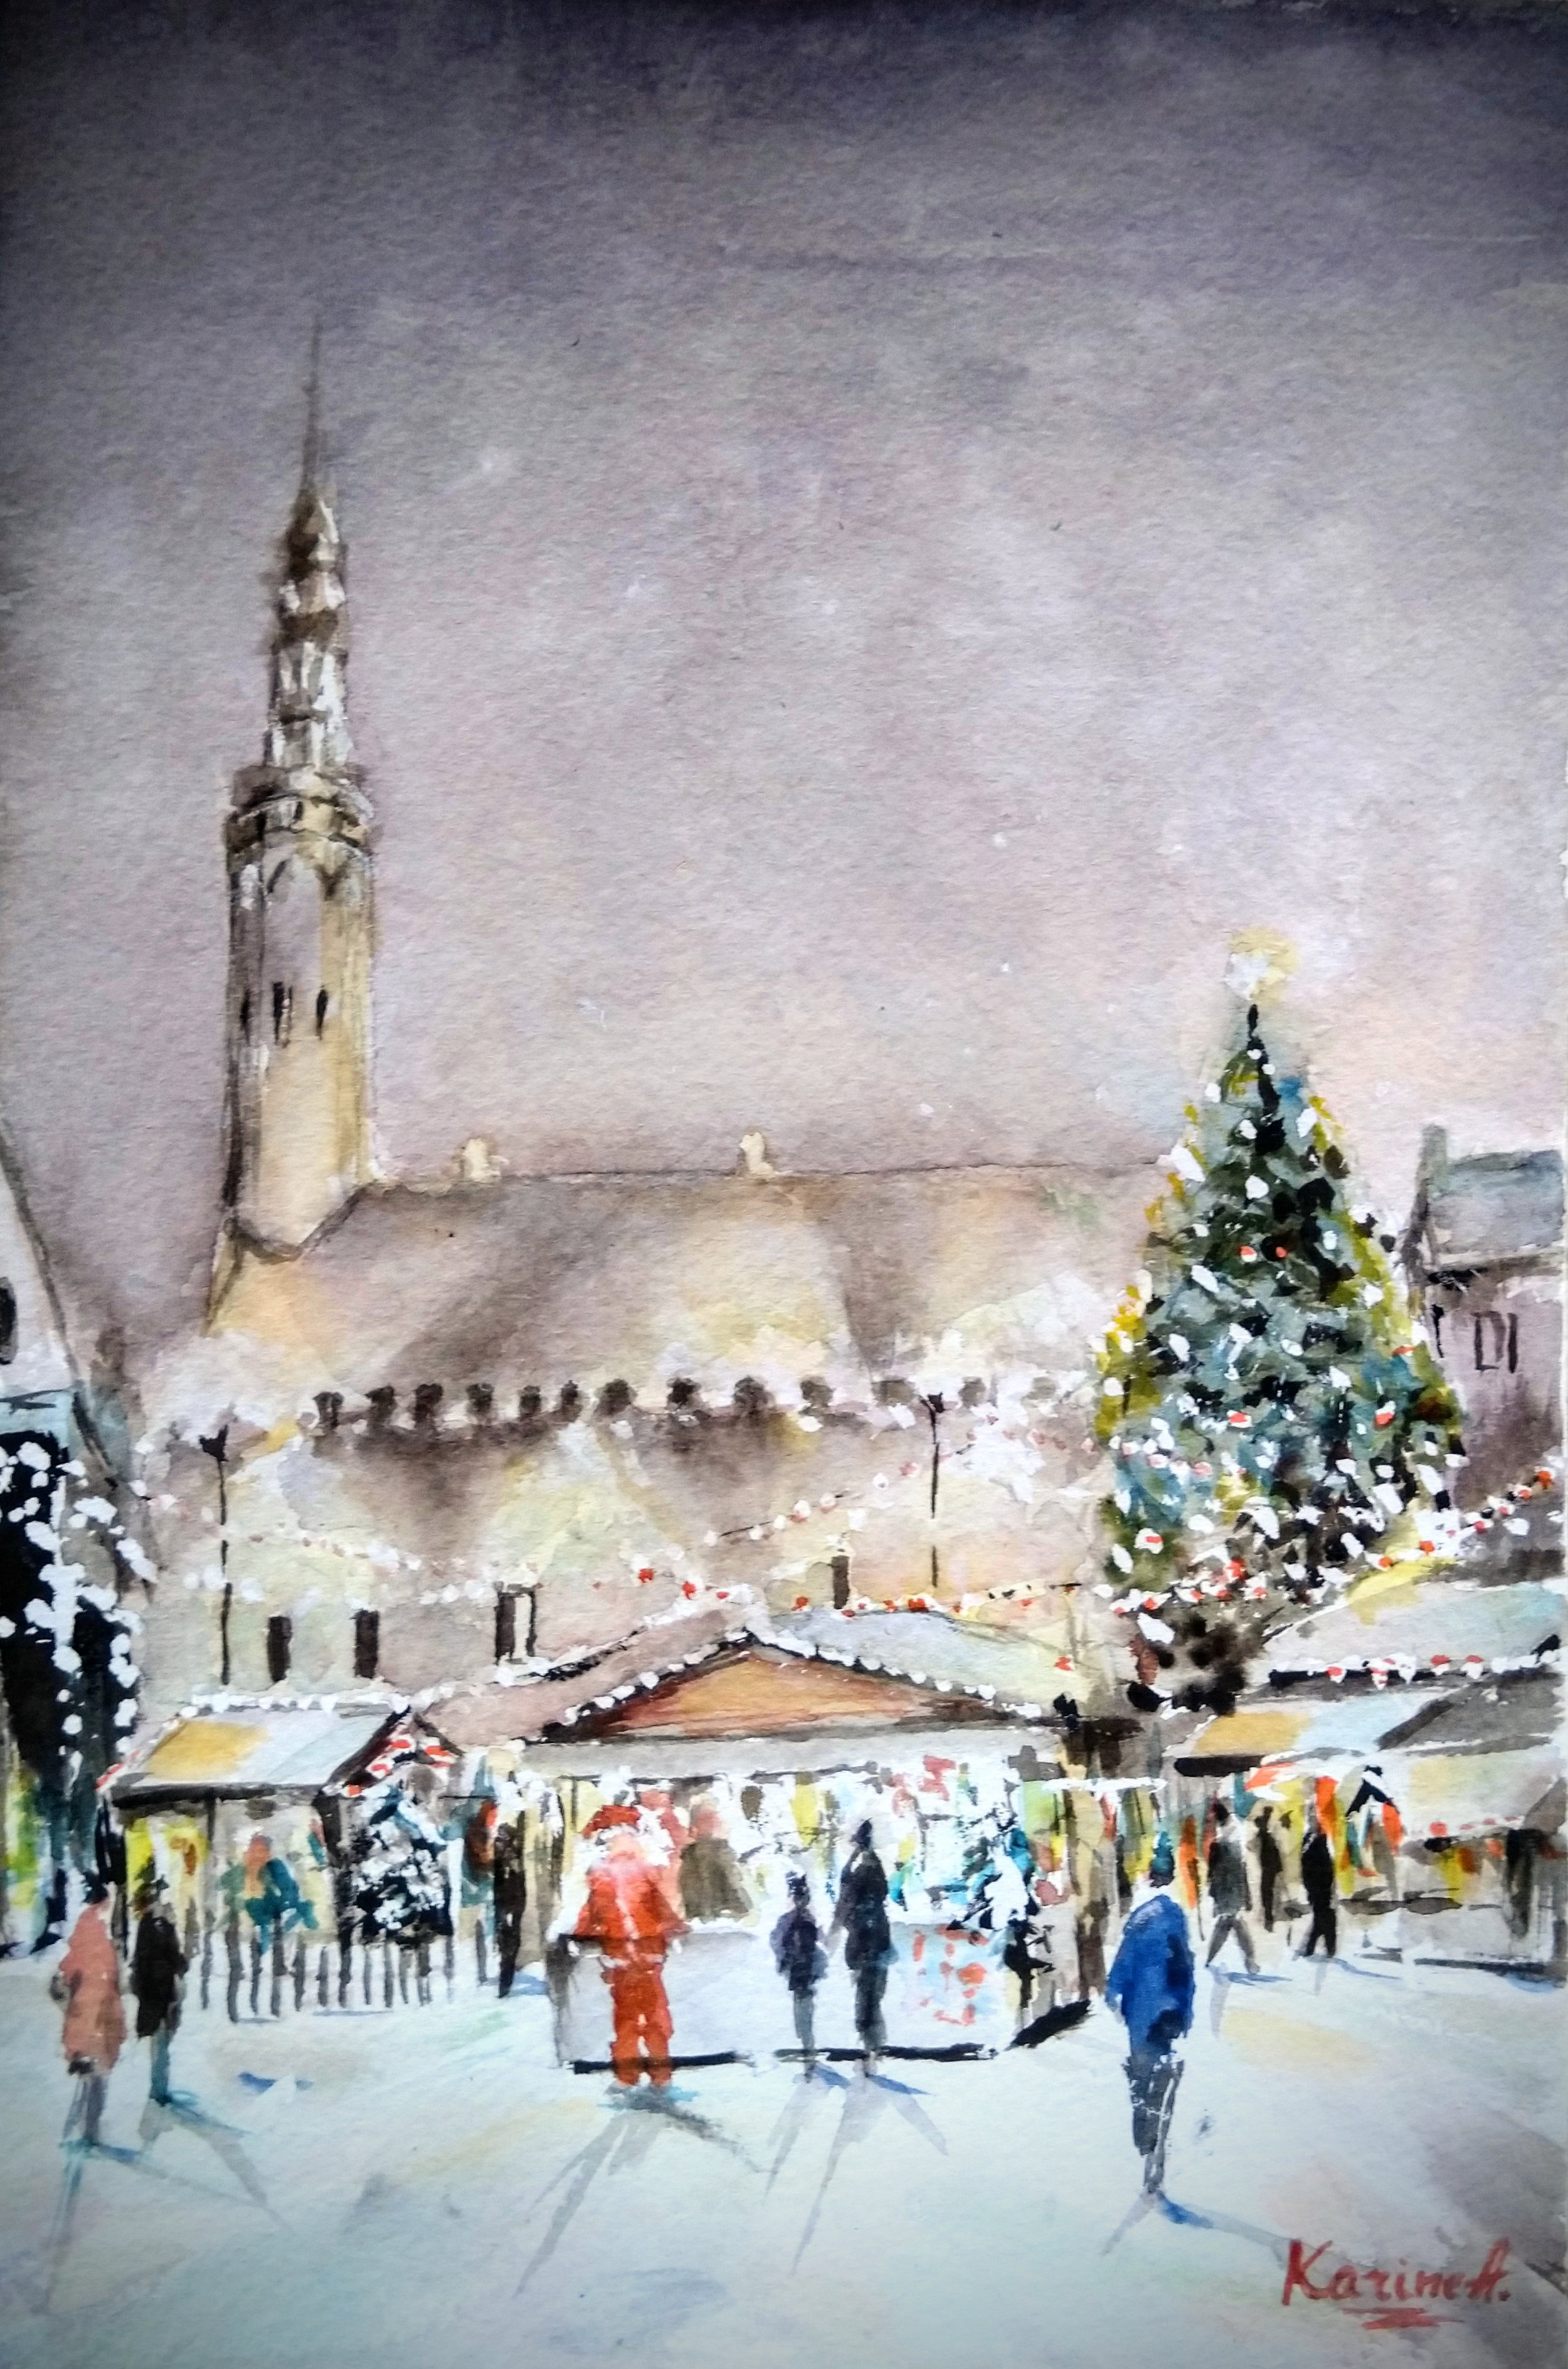 Christmas Fair. The work that got an Editor's pick in Artists and Illustrators mag.